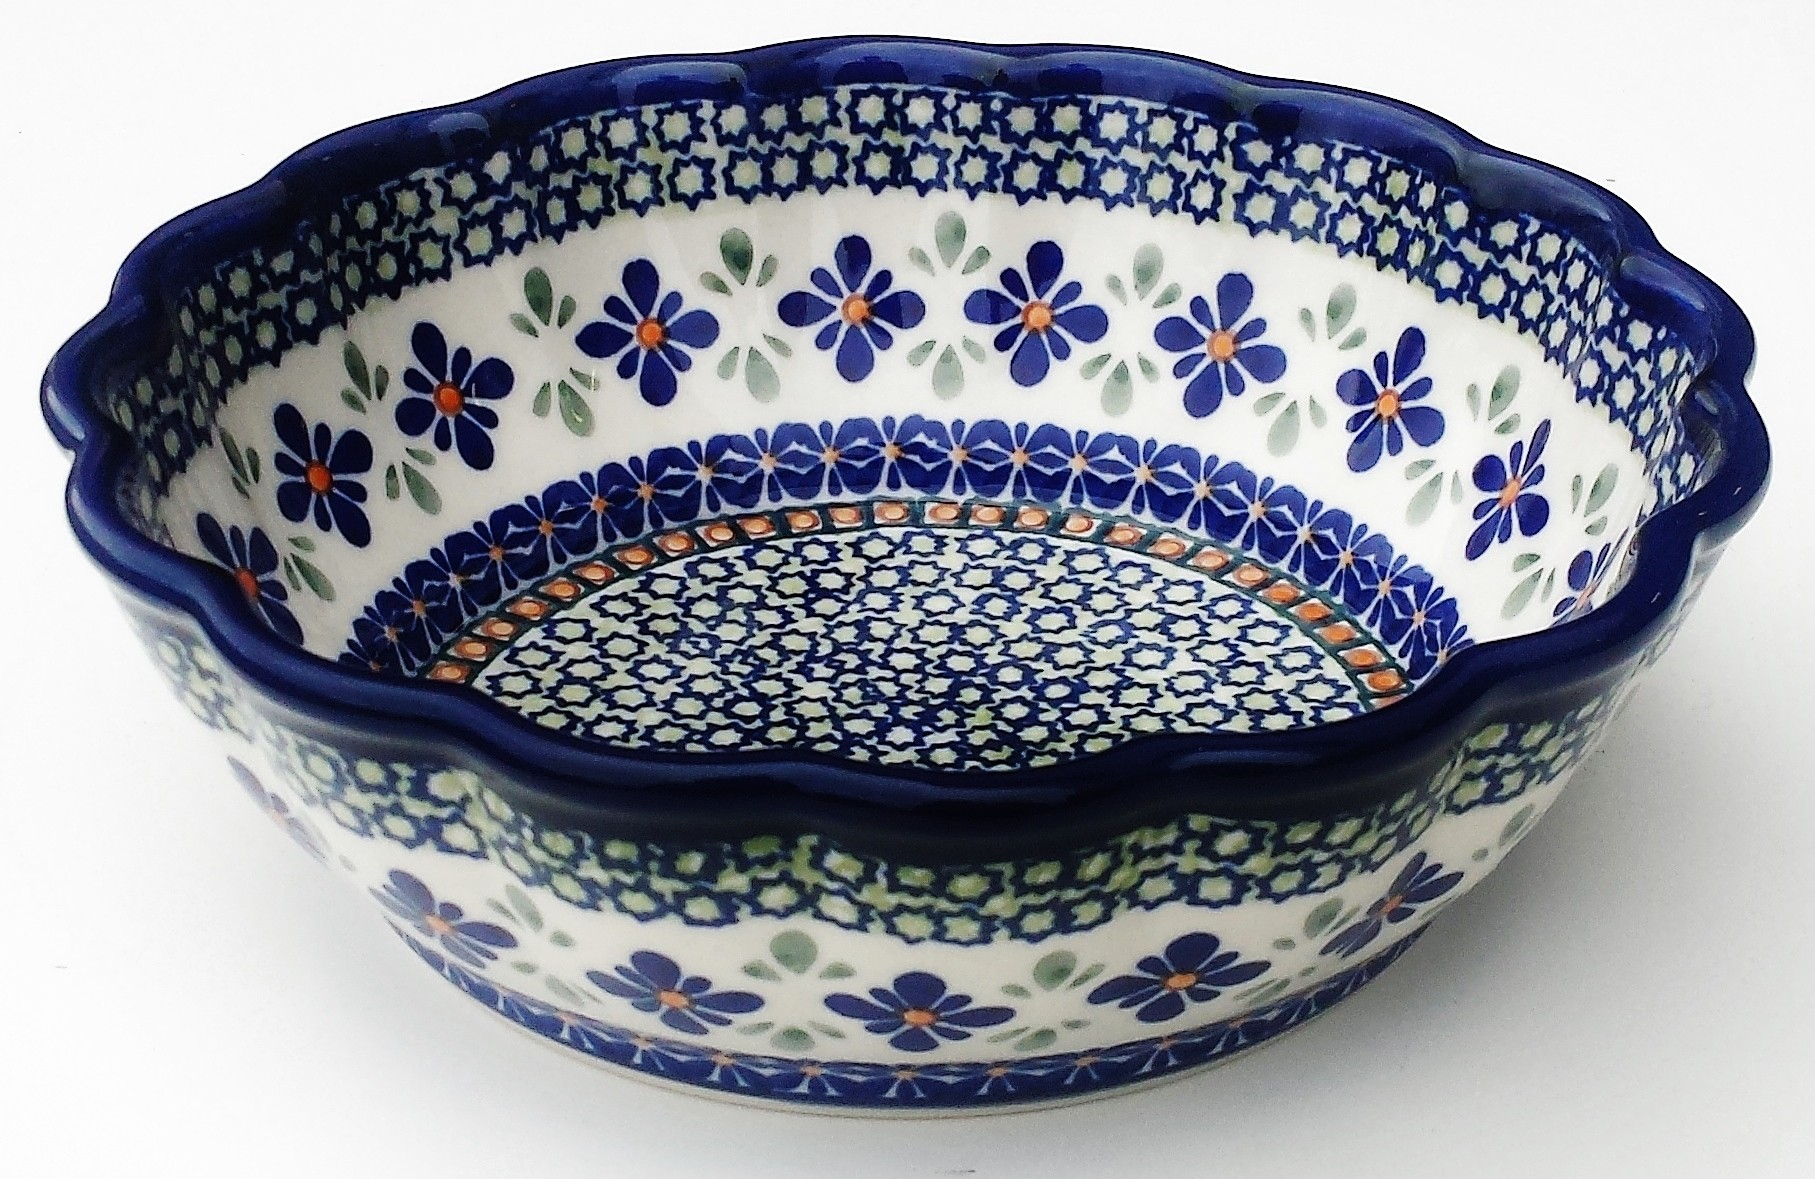 Polish Pottery SWEETIE PIE Scalloped Stoneware Serving Bowl | ARTISAN